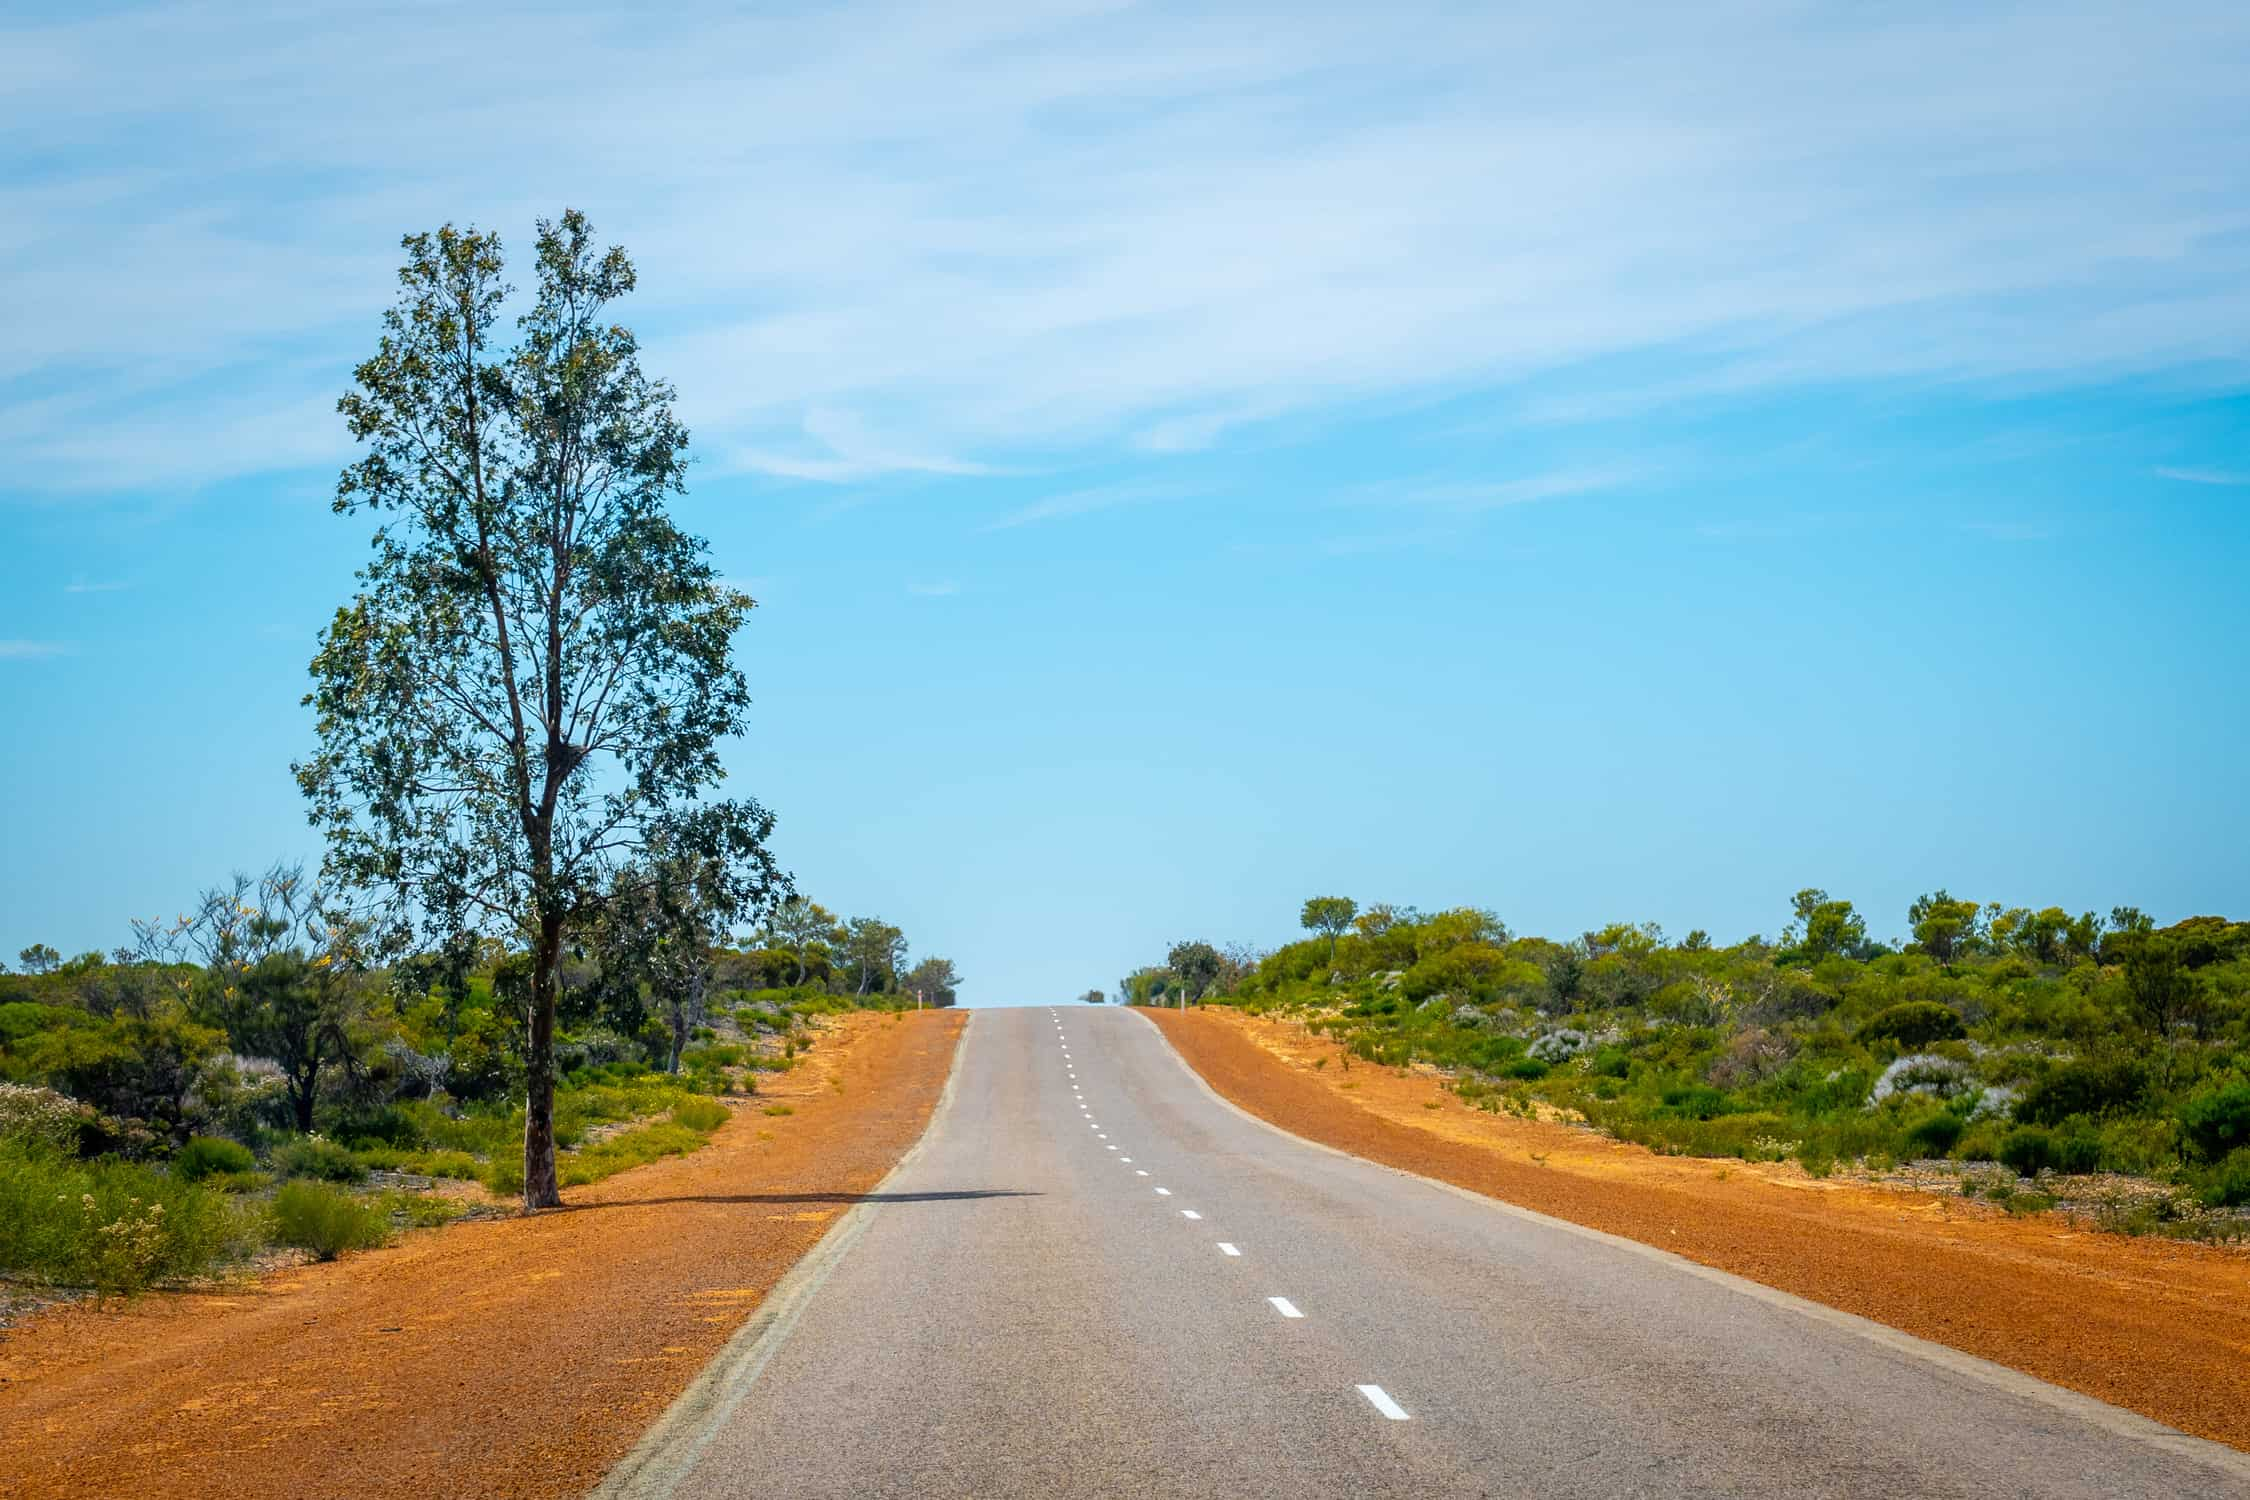 Only tree in Australian bush standing next to the straight road